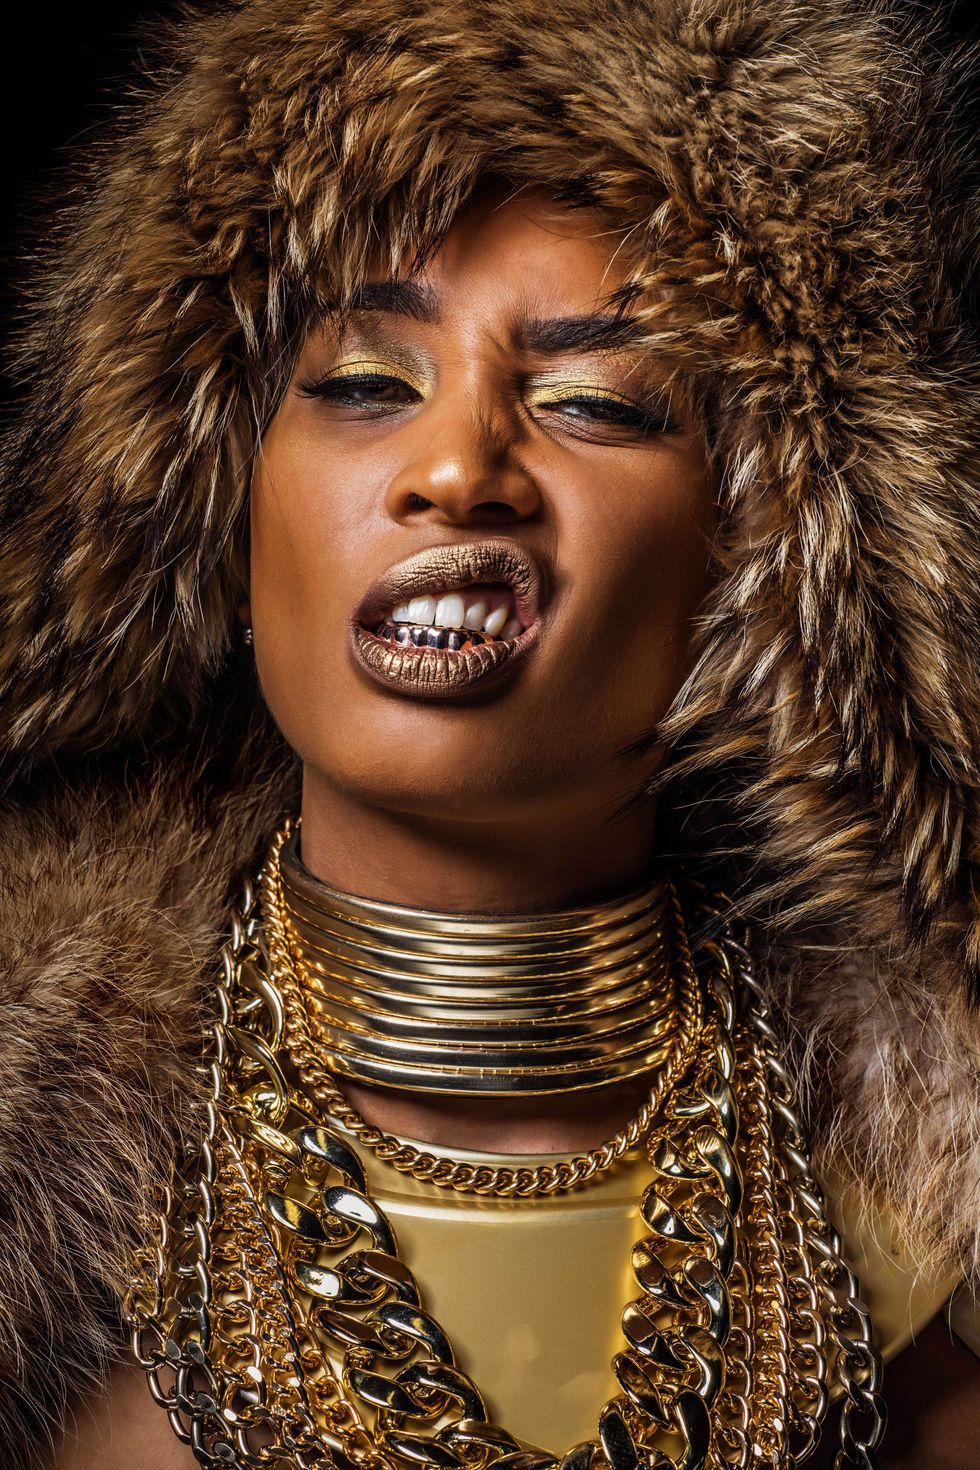 Black Women, Grillz, and the Reclamation of Power